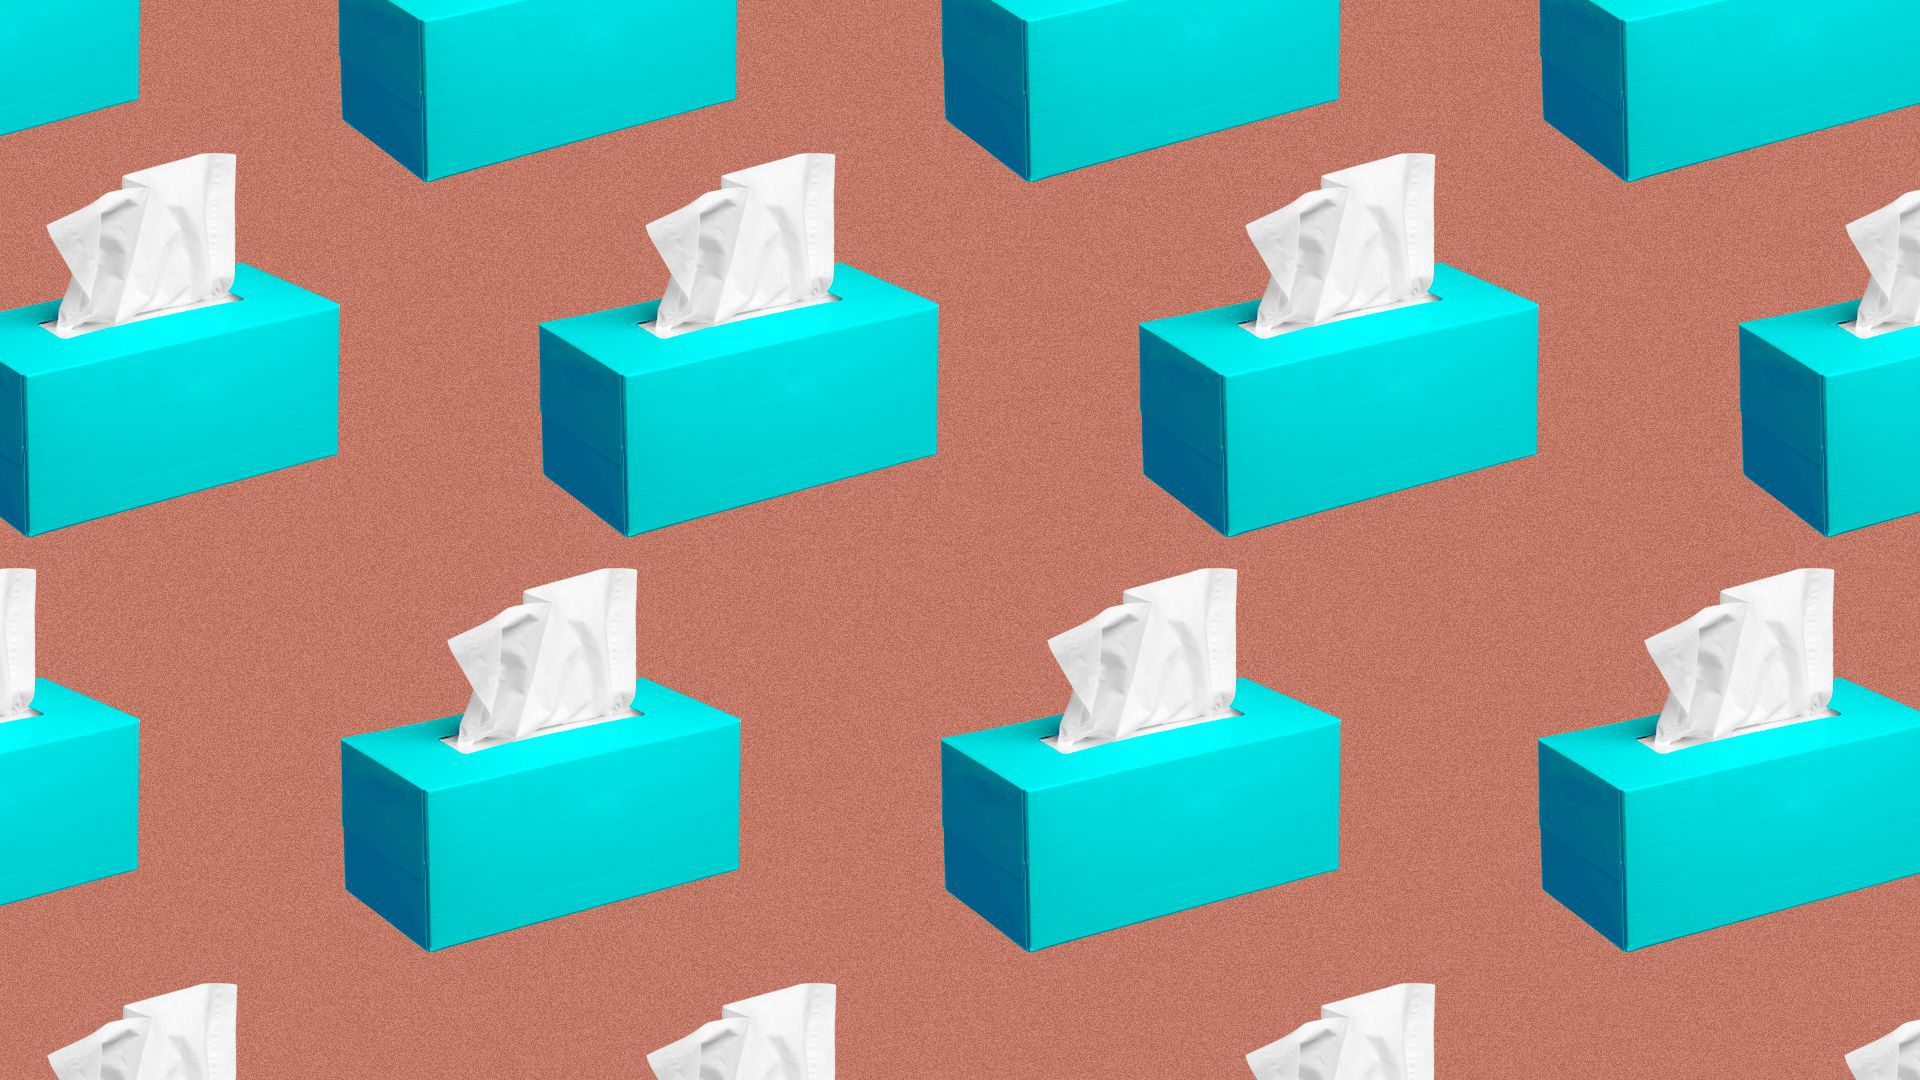 Illustration of a pattern of tissue boxes.